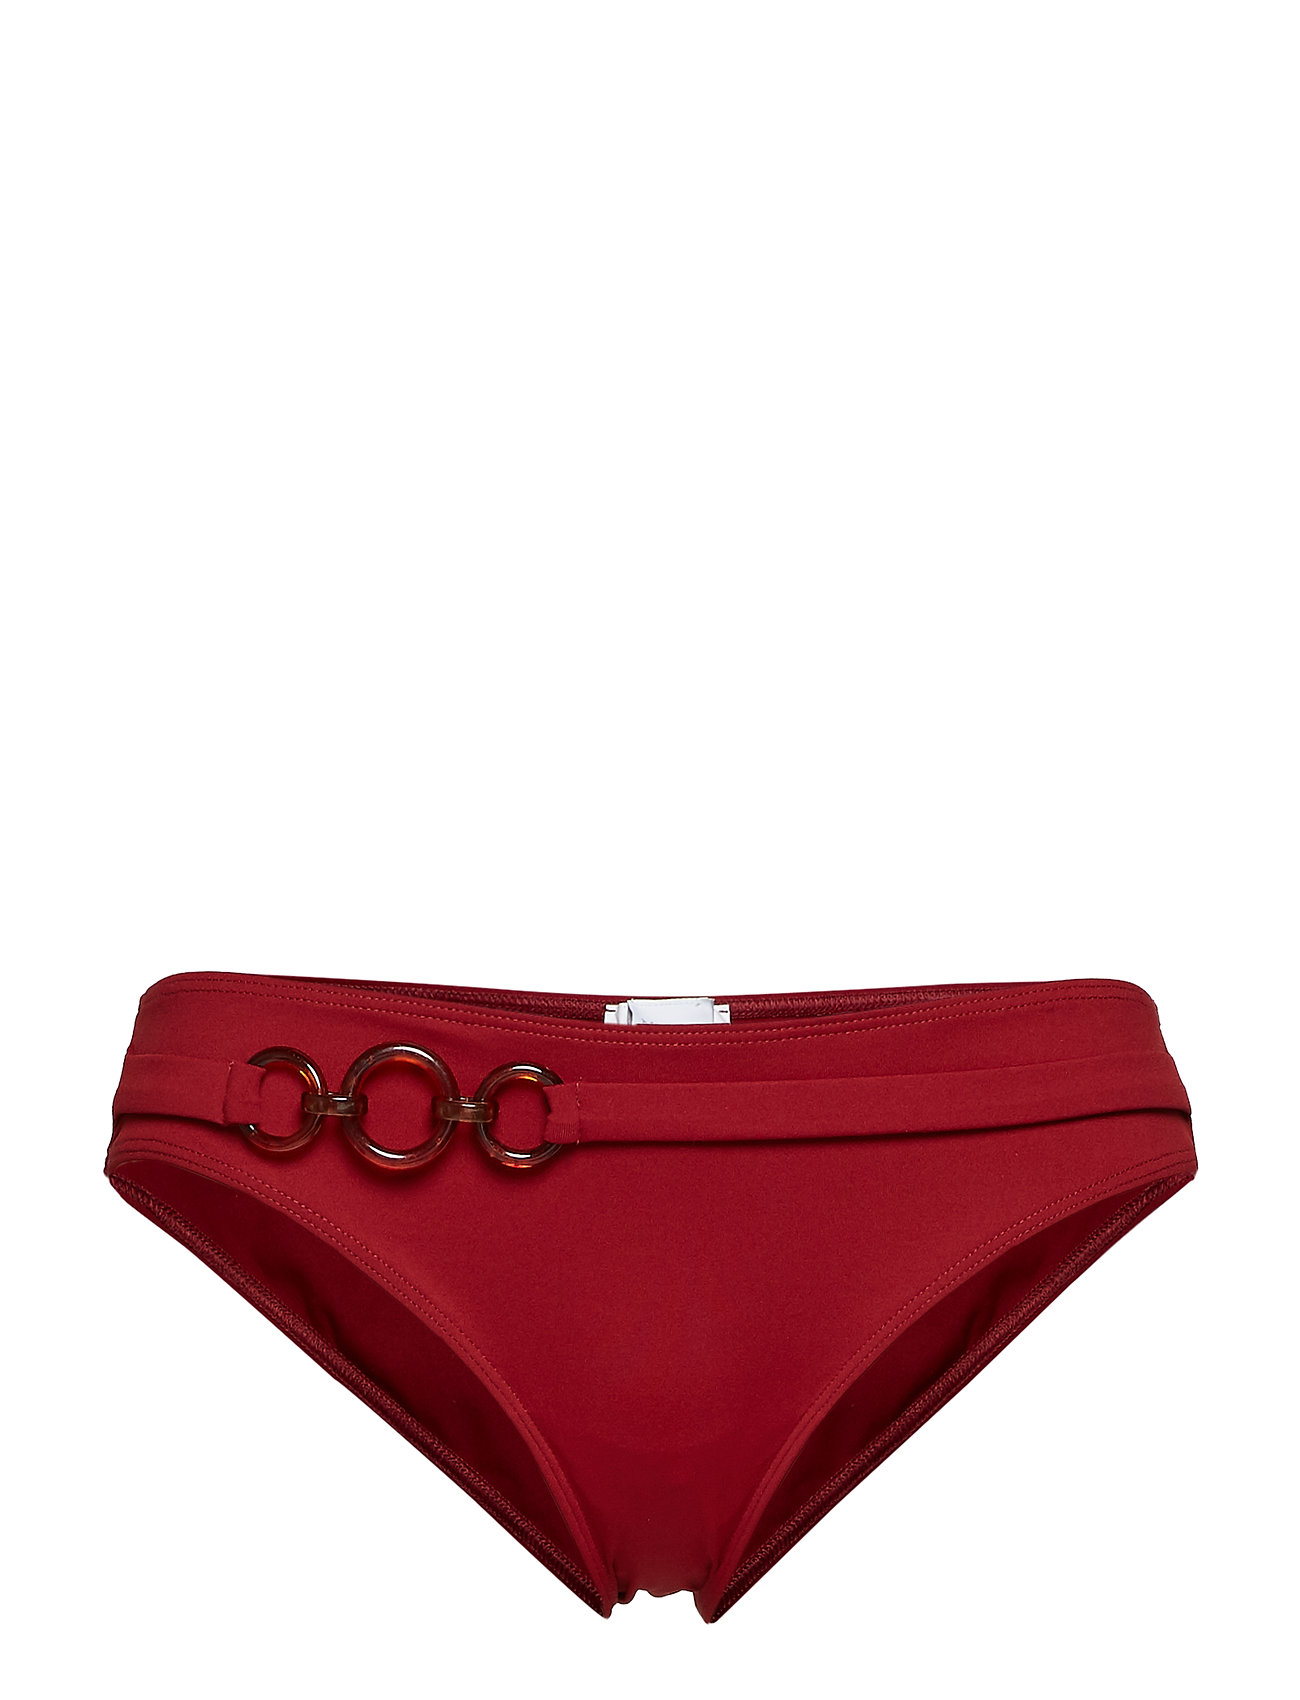 Max Mara Leisure 2SONG - RED BATH SUIT